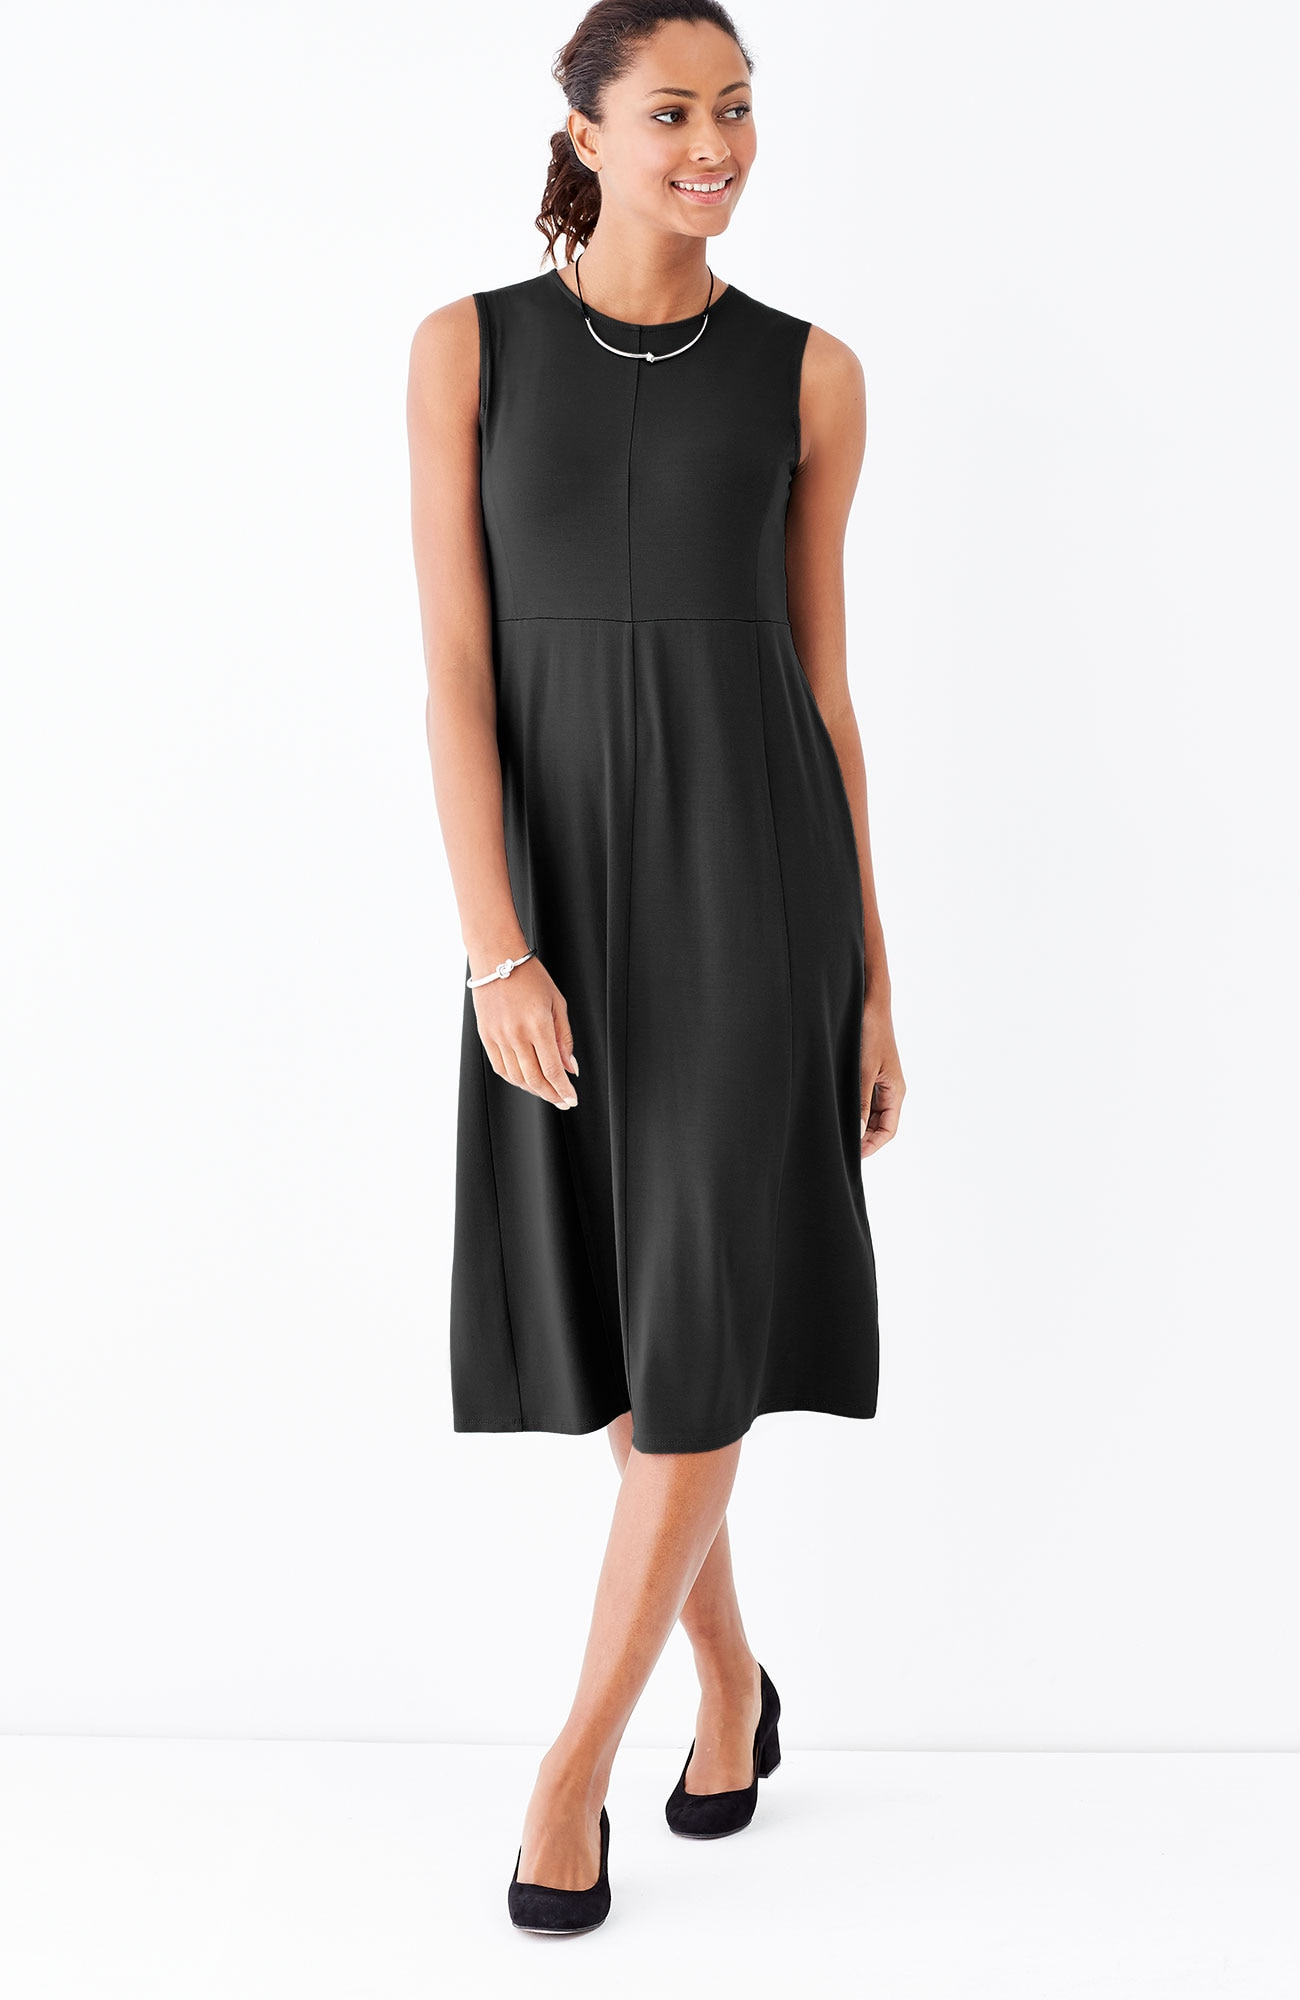 Wearever sleeveless multiseam dress